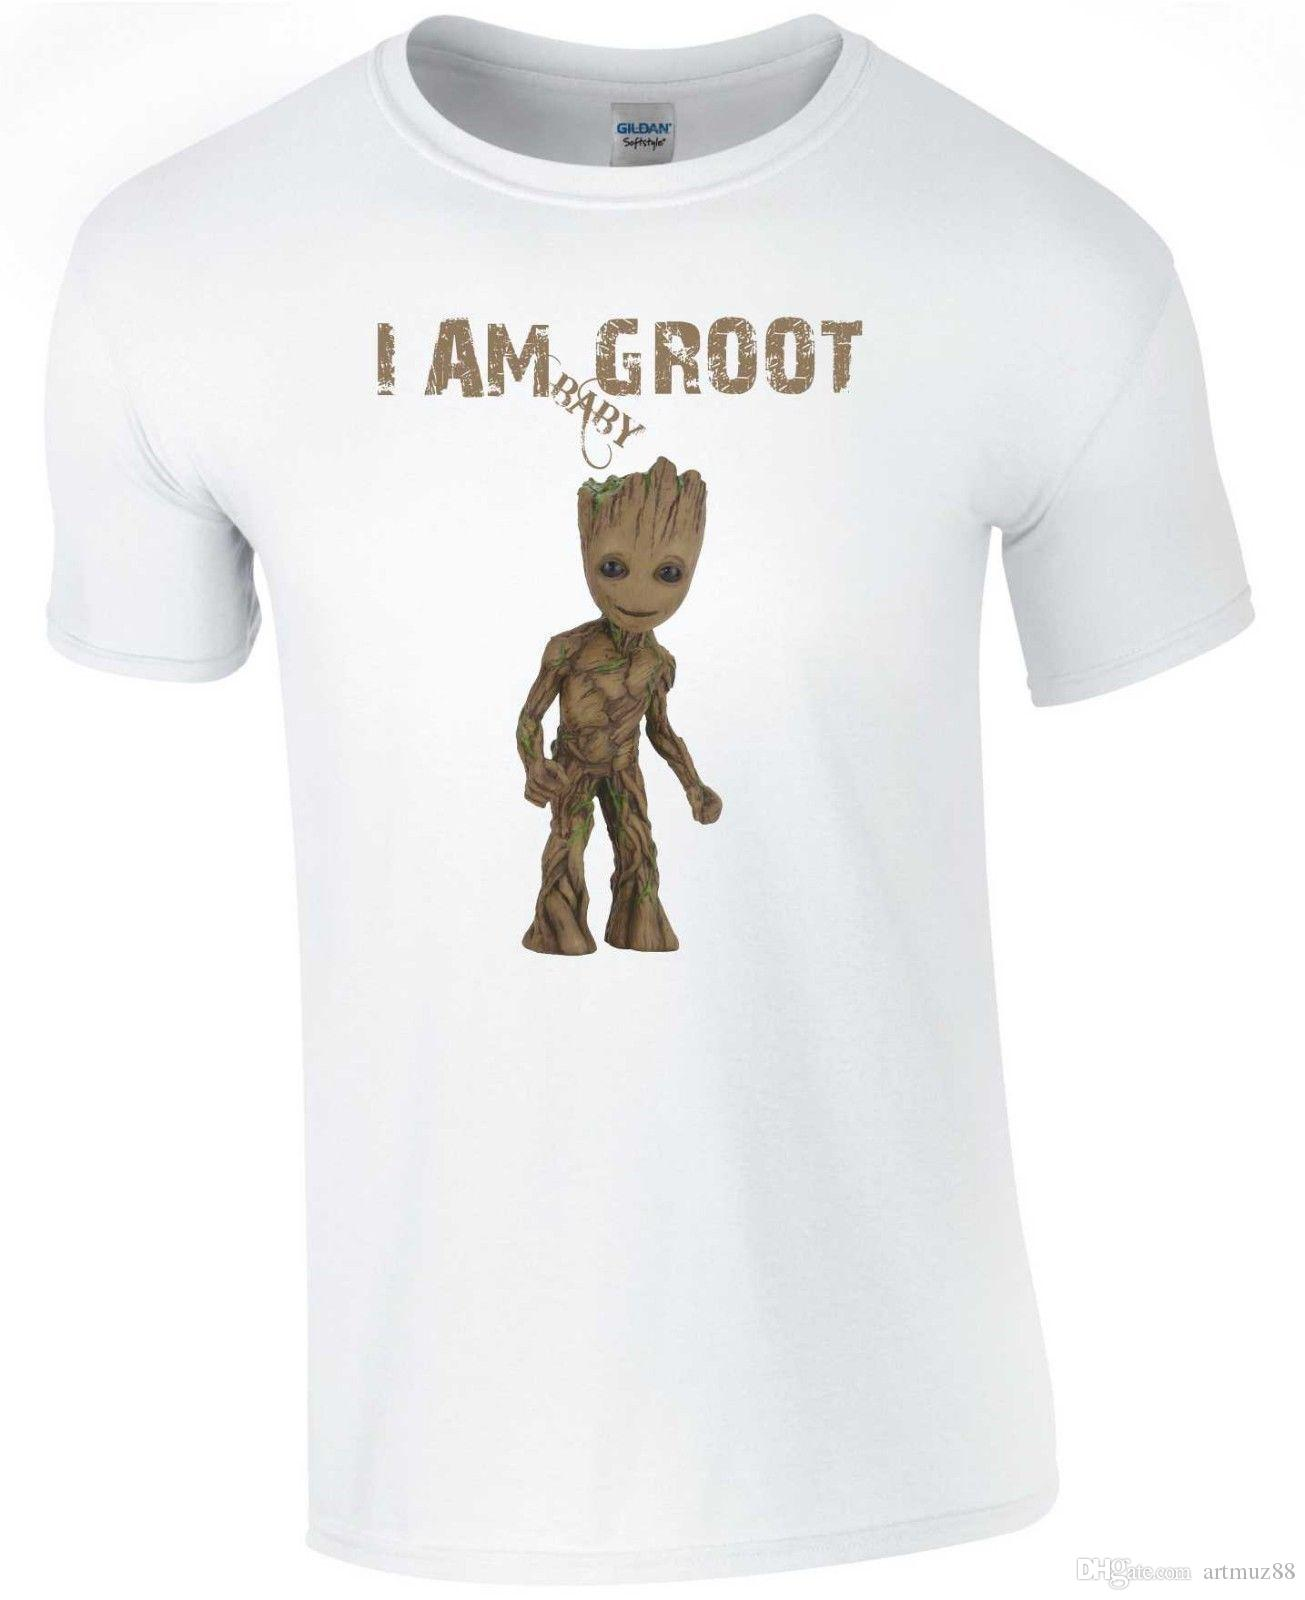 0b73458cd Baby Groot T Shirt Avengers Infinity War Fun 24 Hour Tee Shirts T Shirts T  Shirts From Artmuz88, $10.76| DHgate.Com